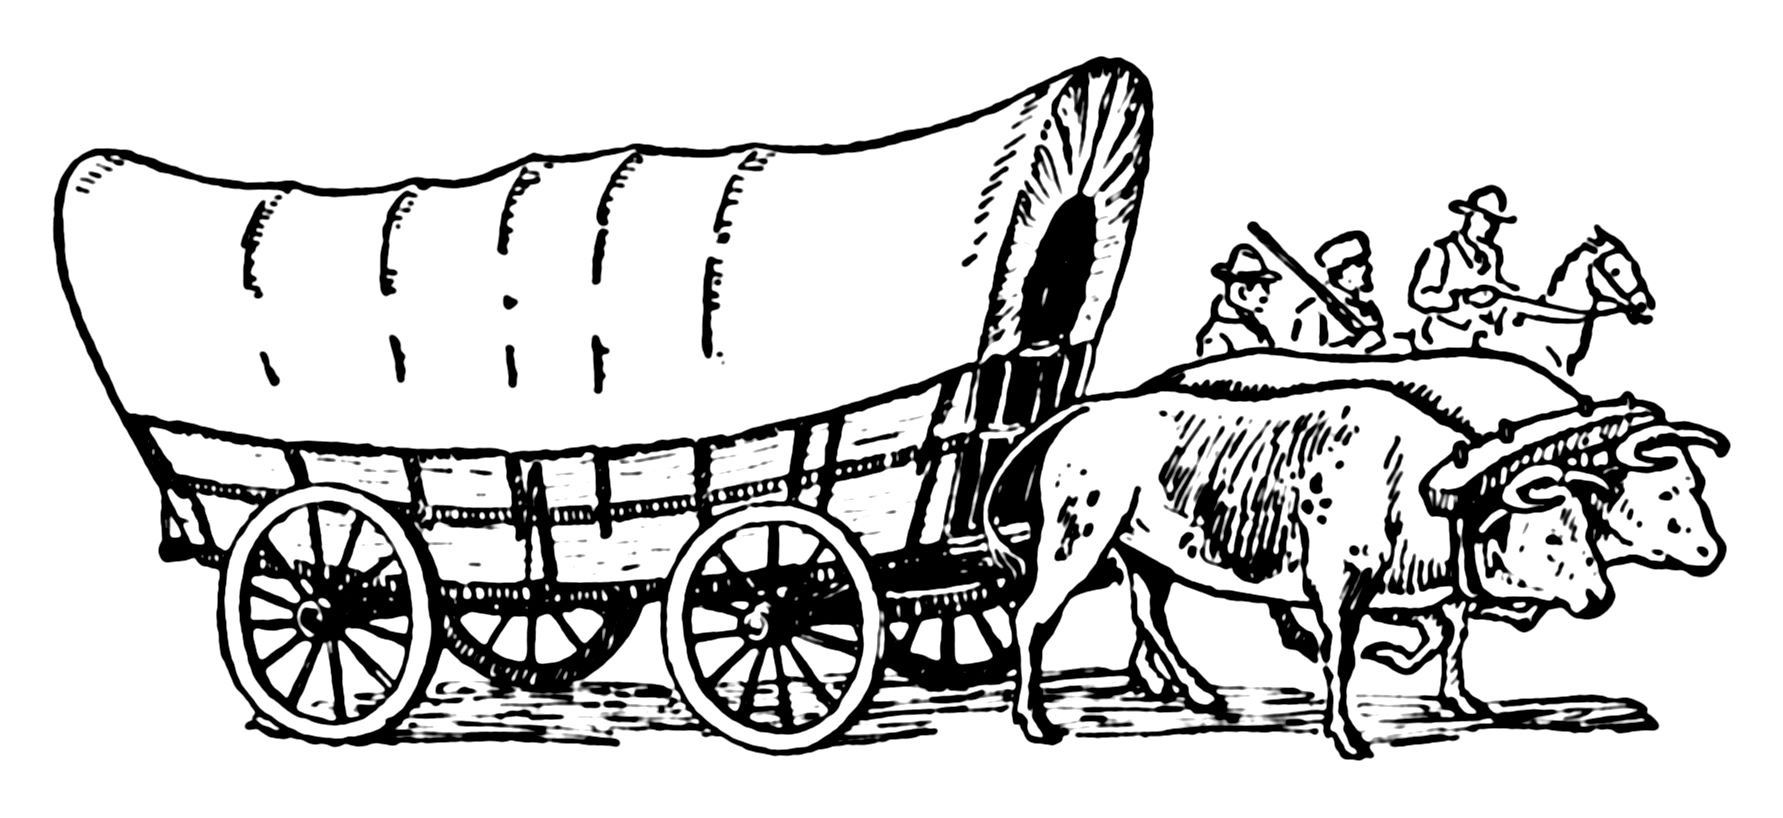 Pin By R J On Westward The Wagons Covered Wagon American